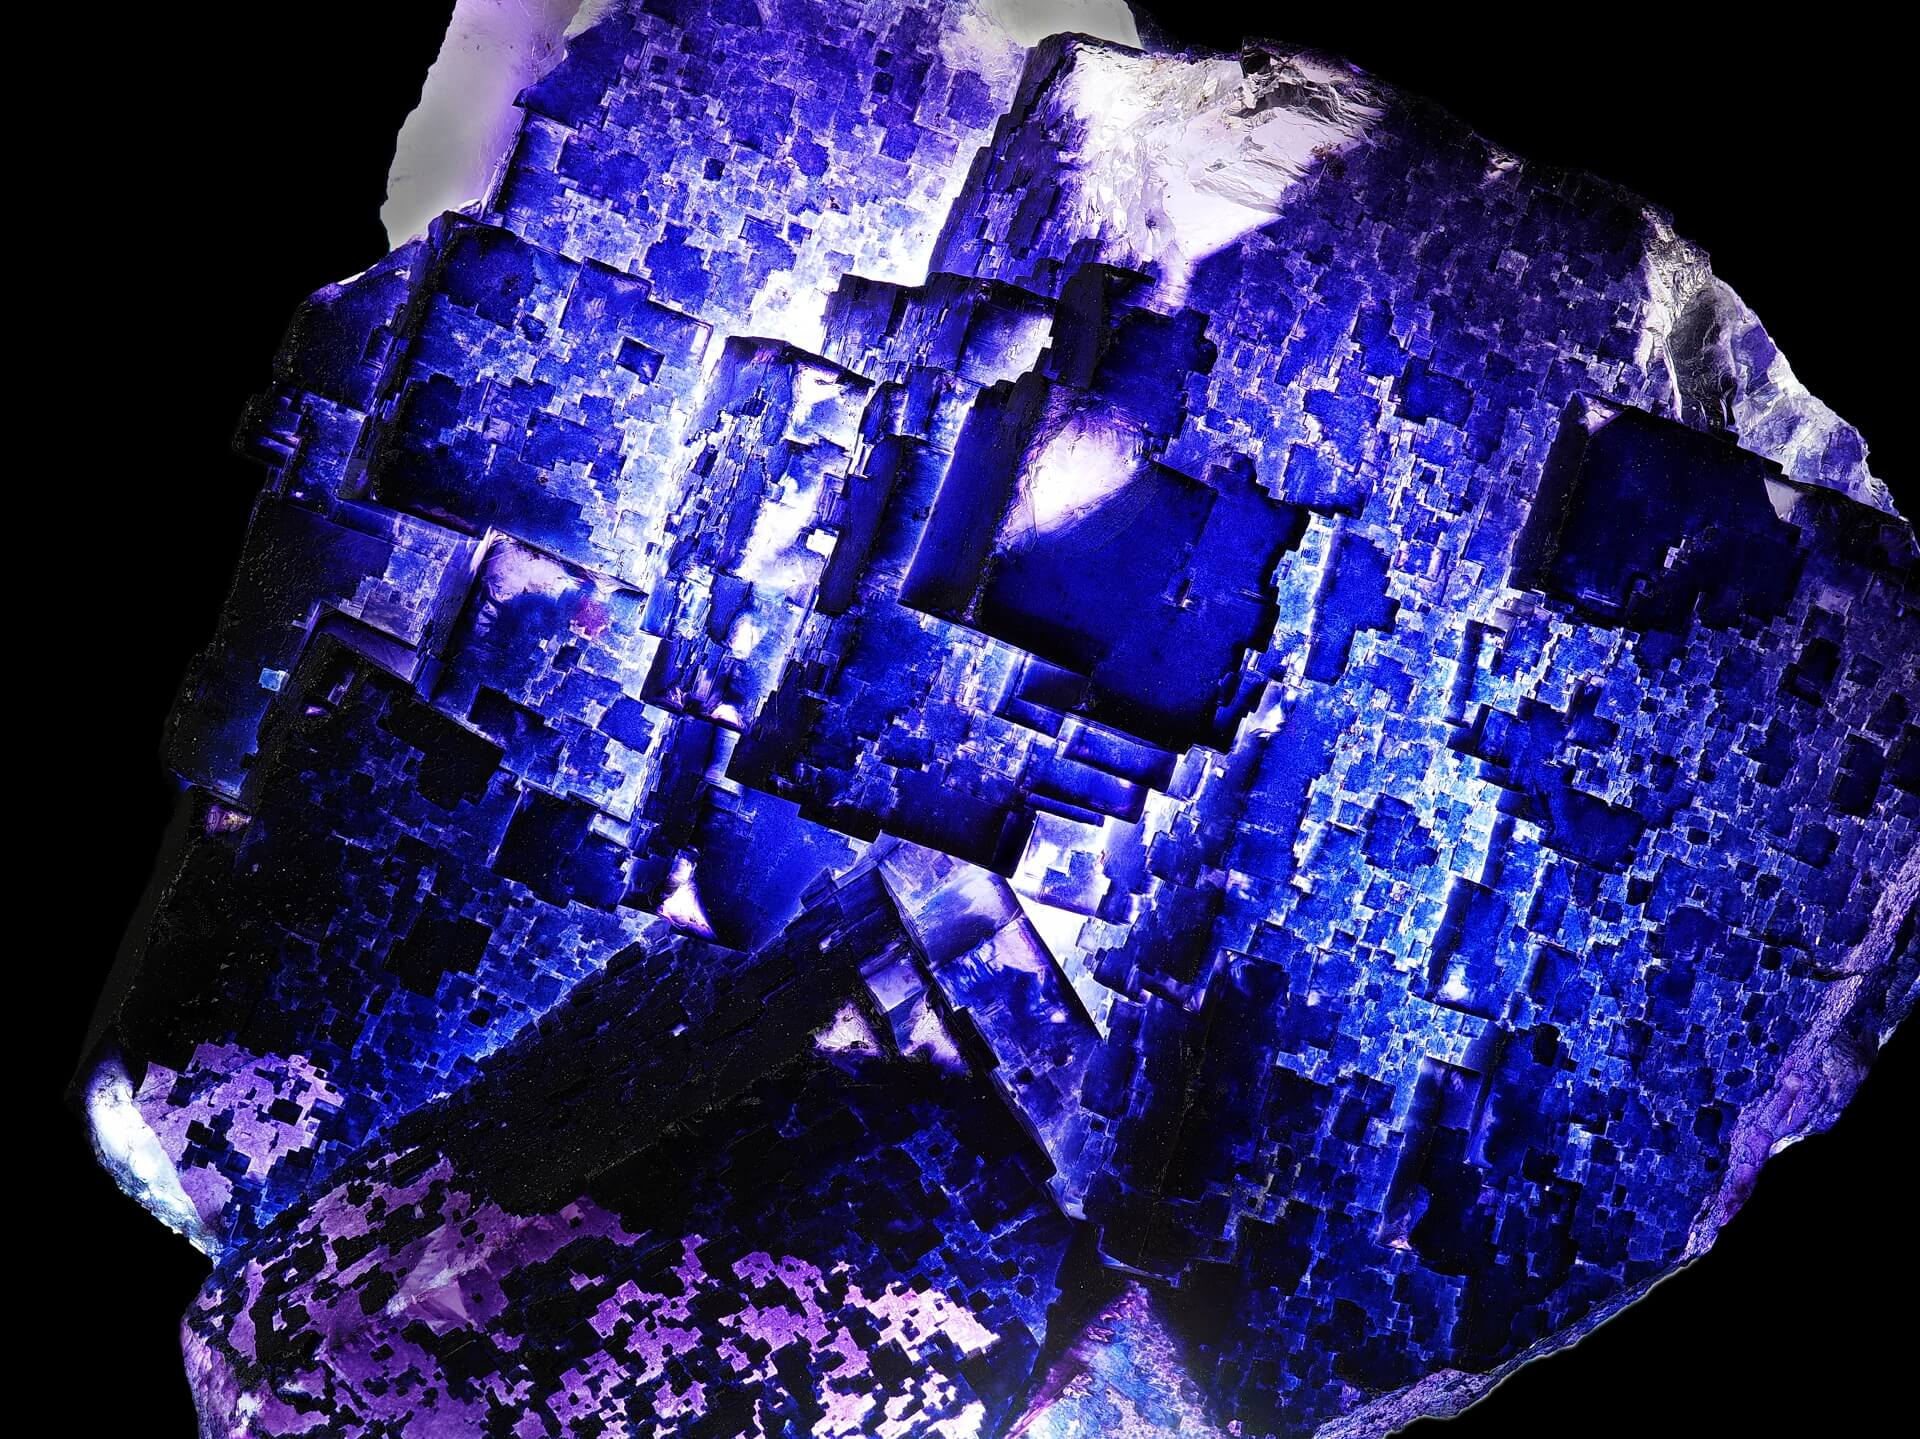 Light shines through a purple cubic specimen, looking almost like a futuristic city seen from above.